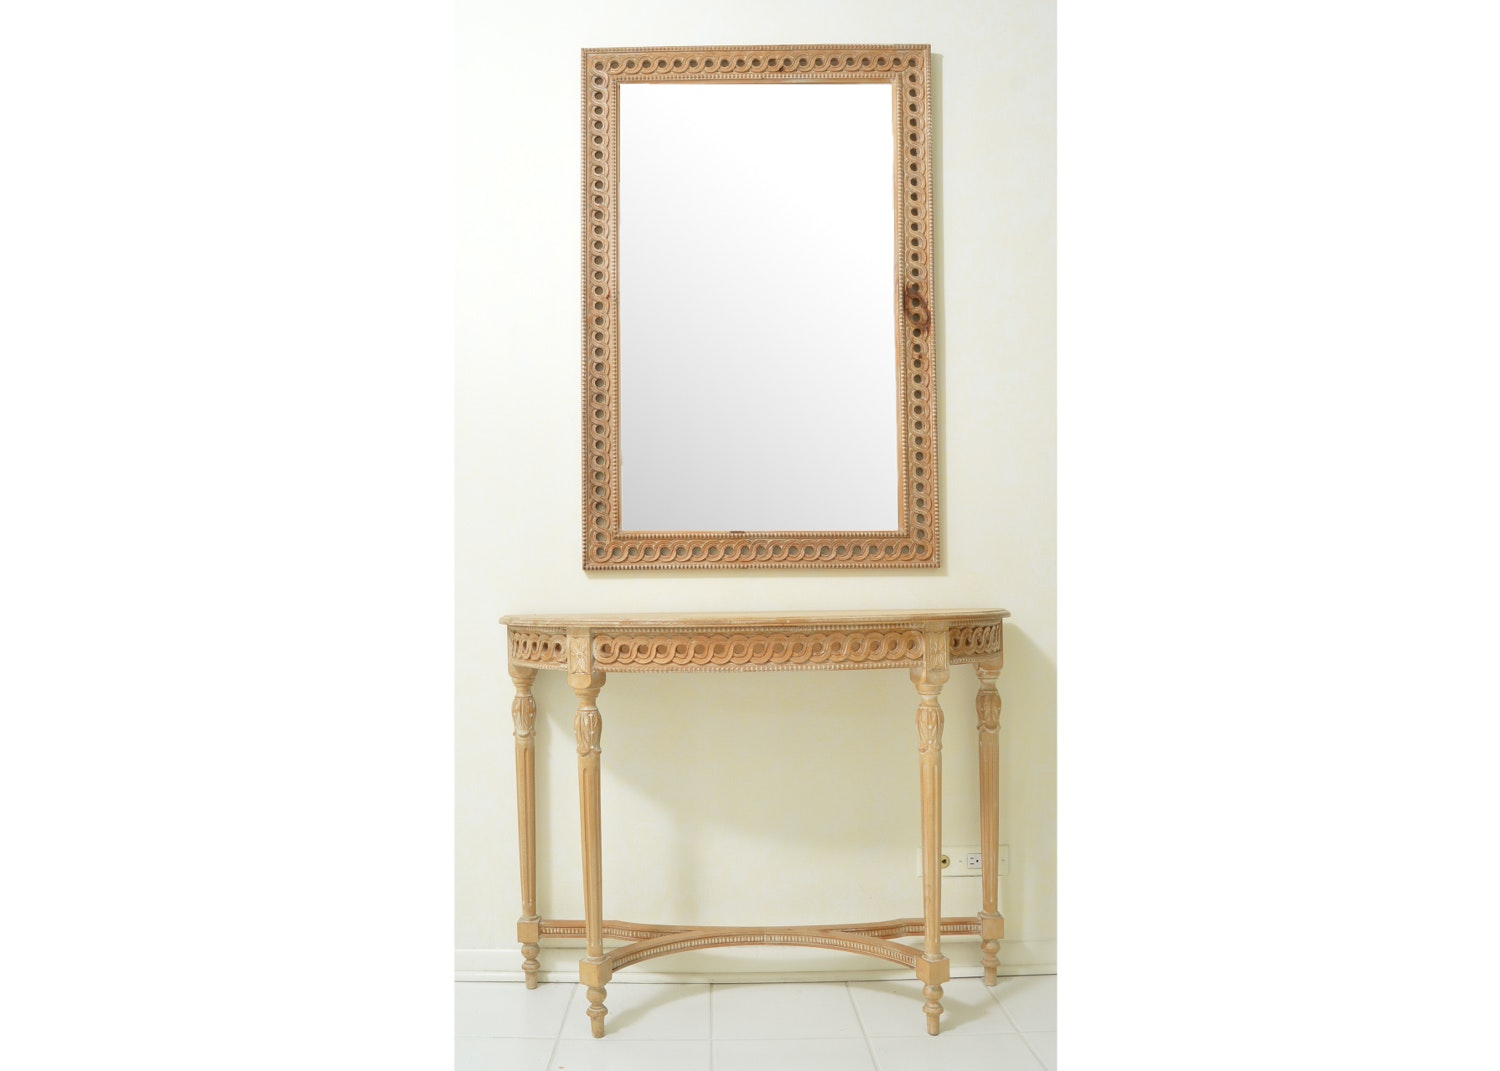 Carved Demilune Console Table and Wall Mirror